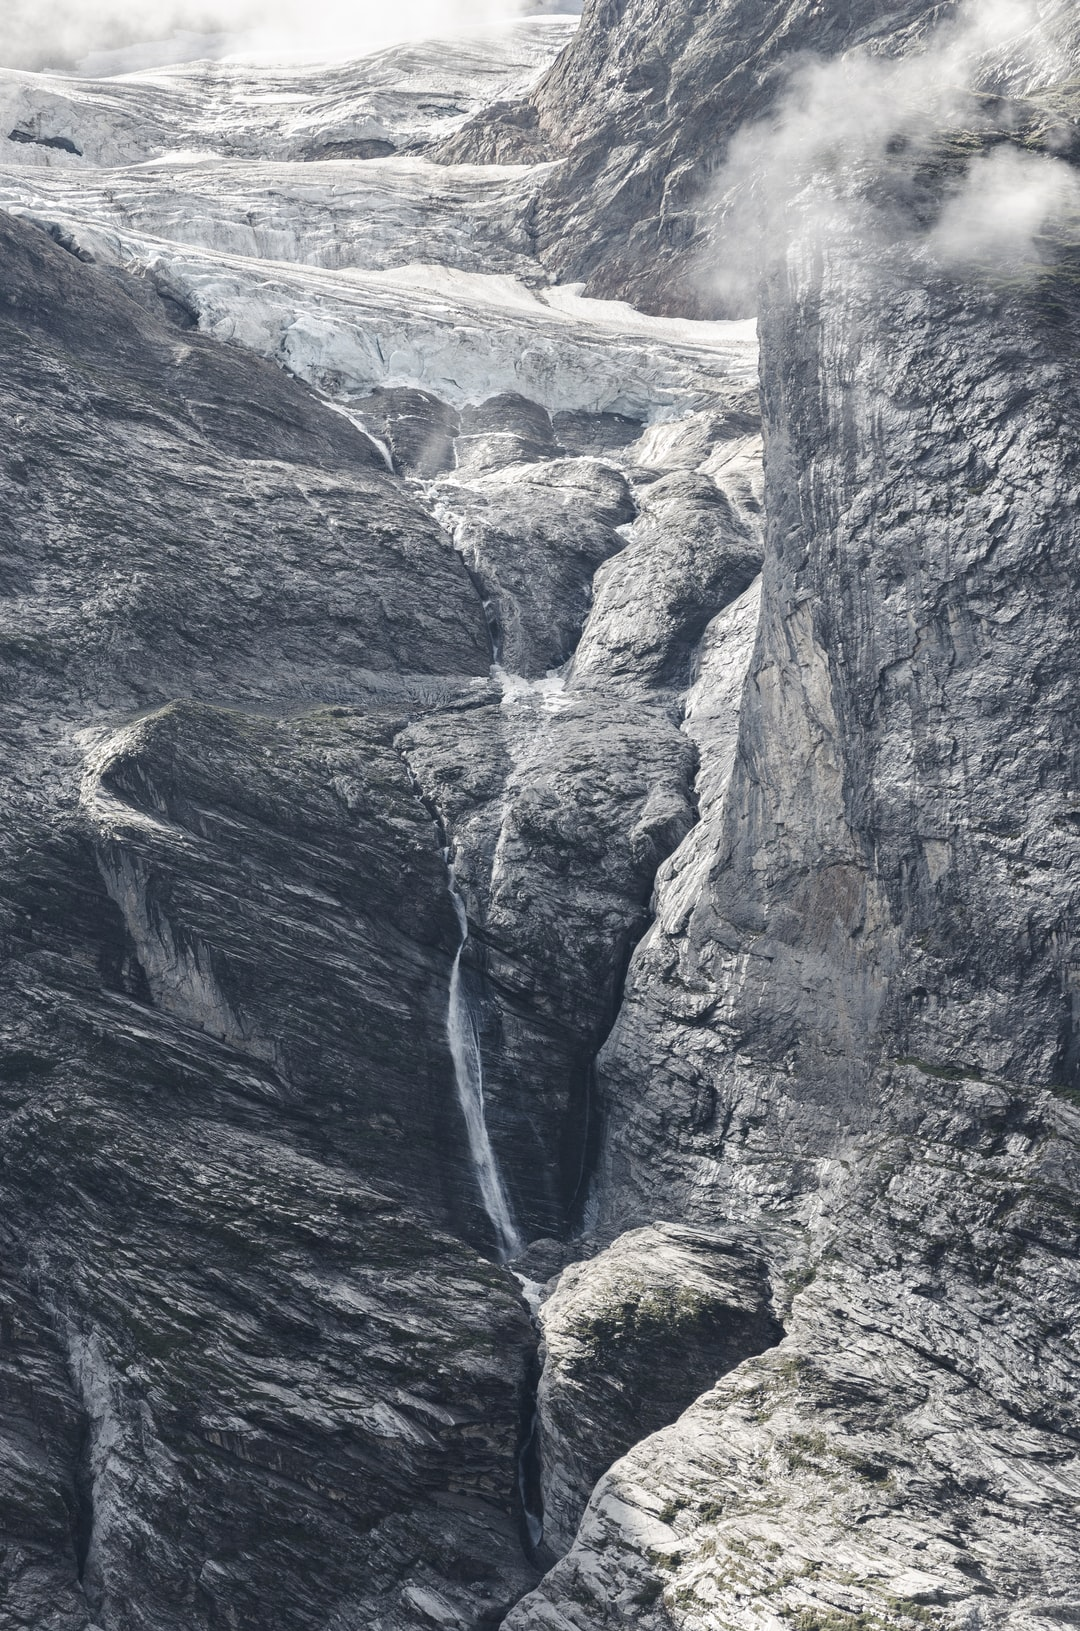 Cliff face waterfall